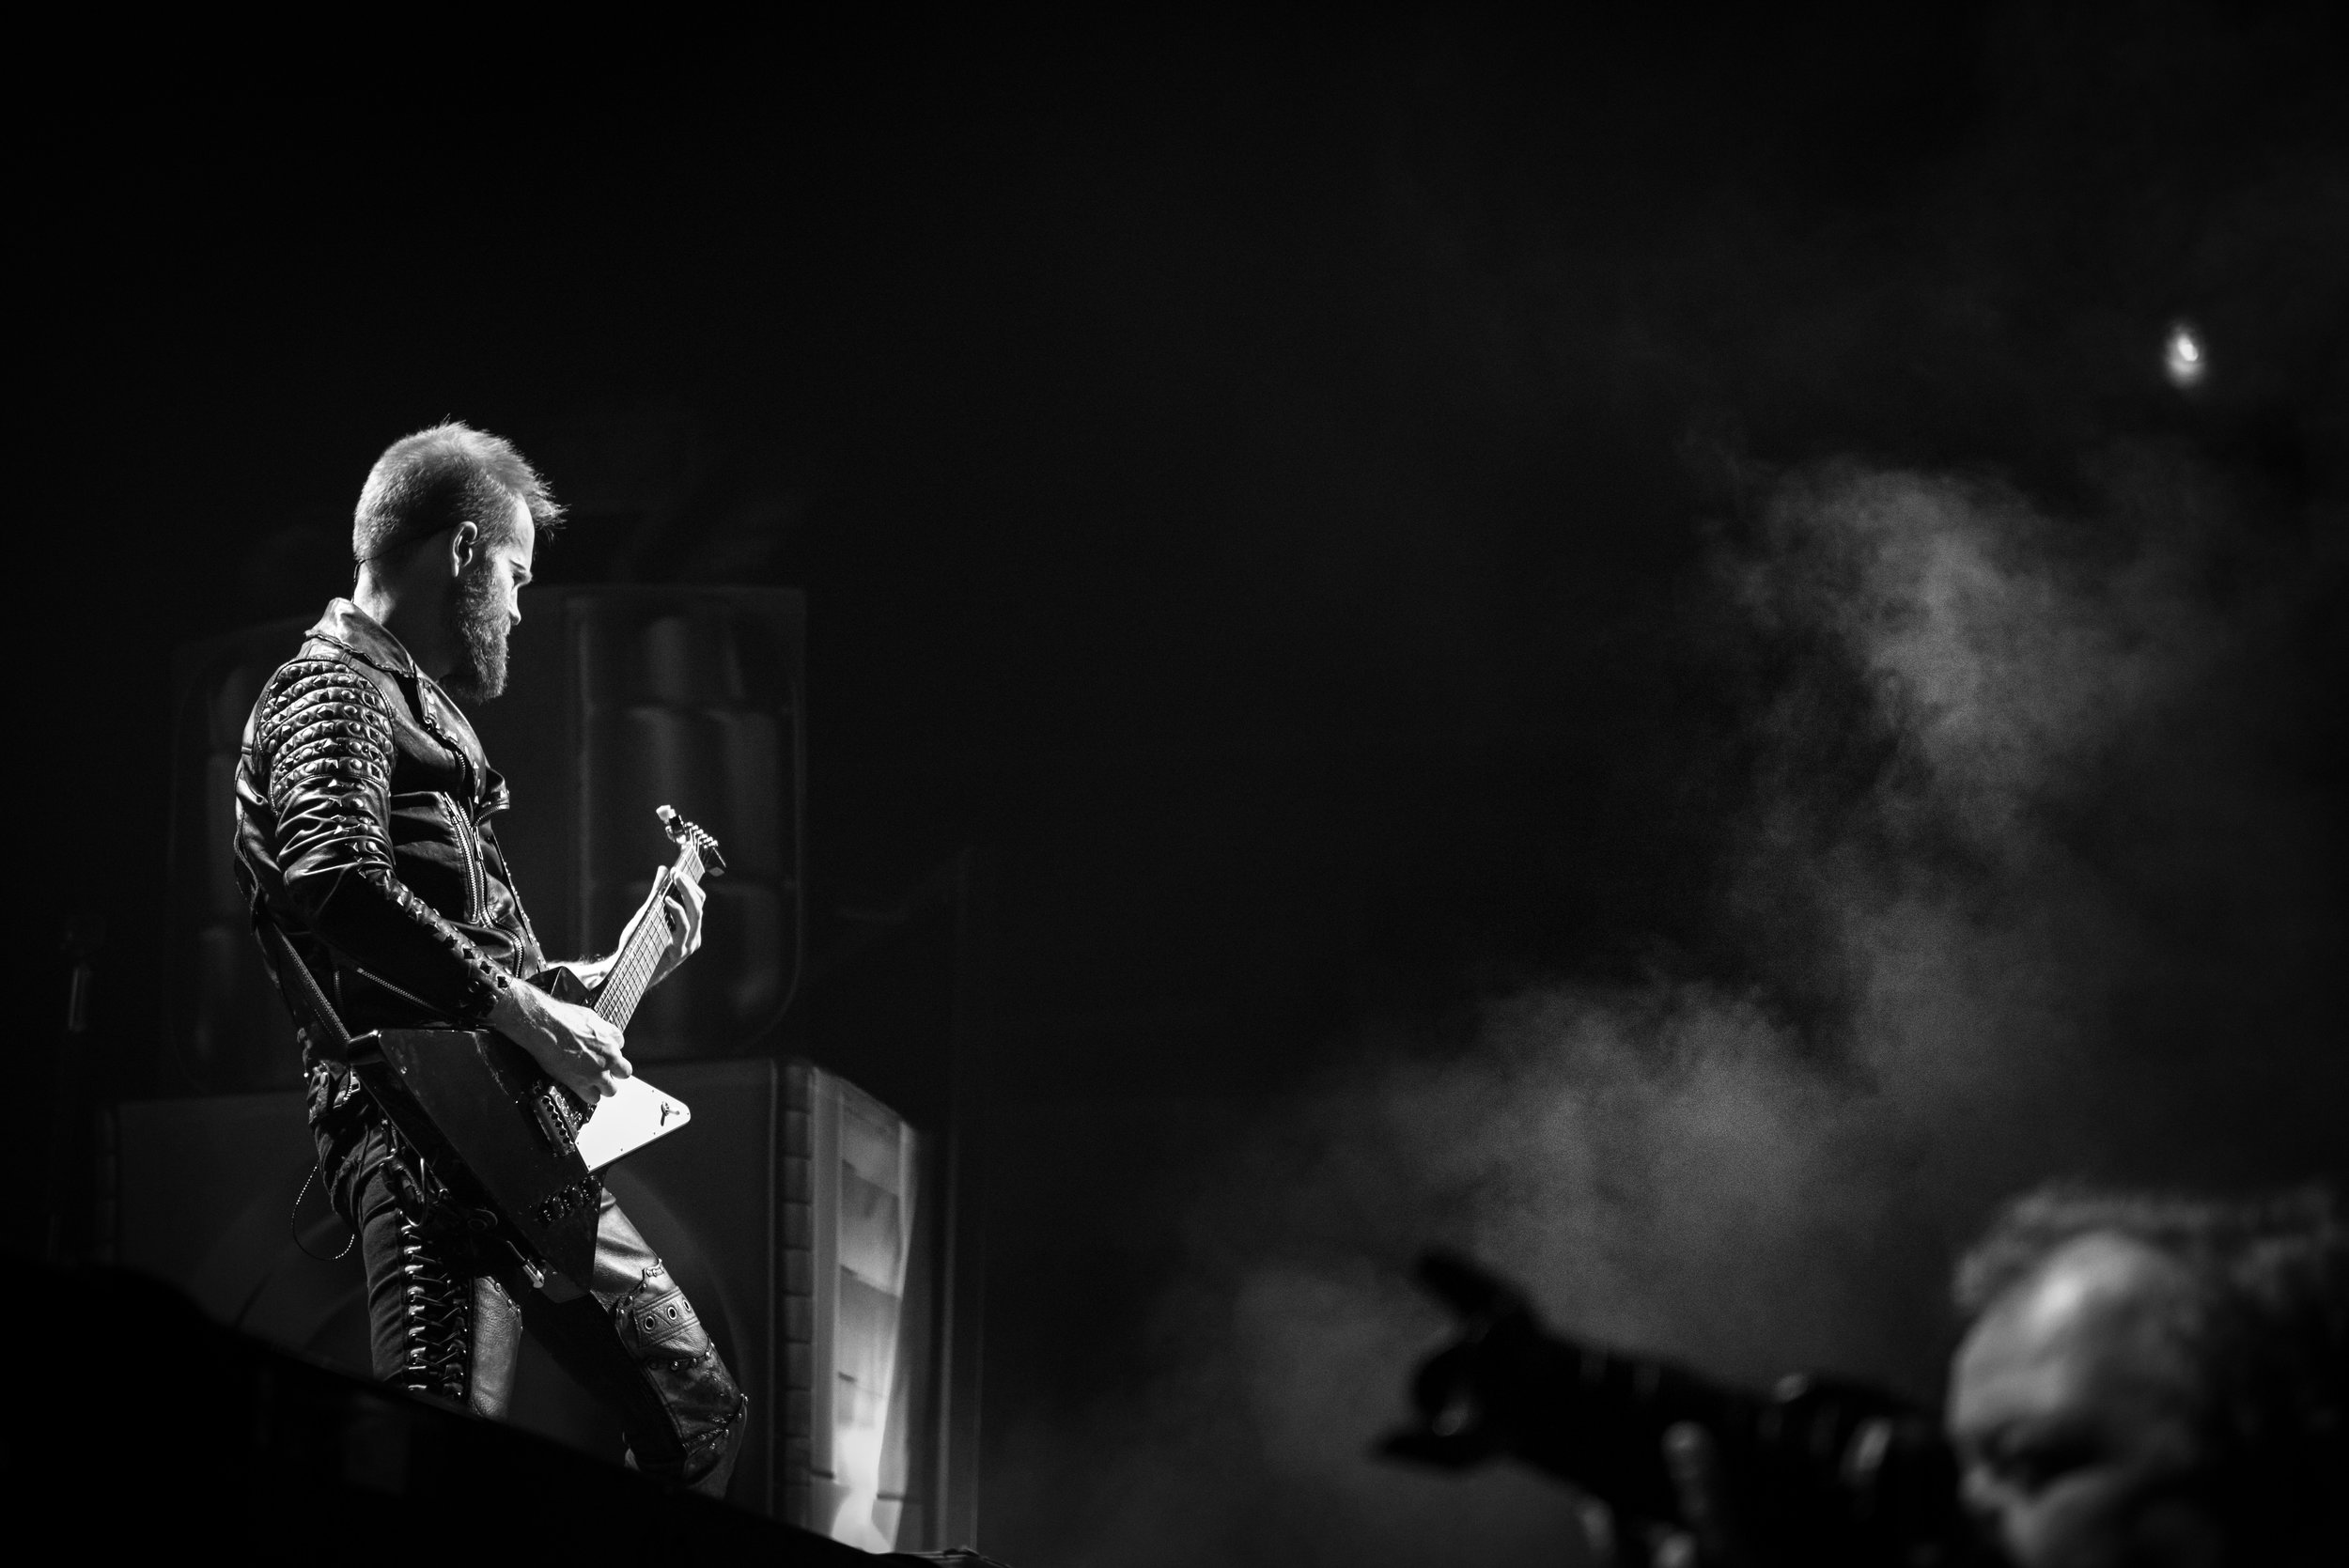 Judas Priest - Print-31.jpg